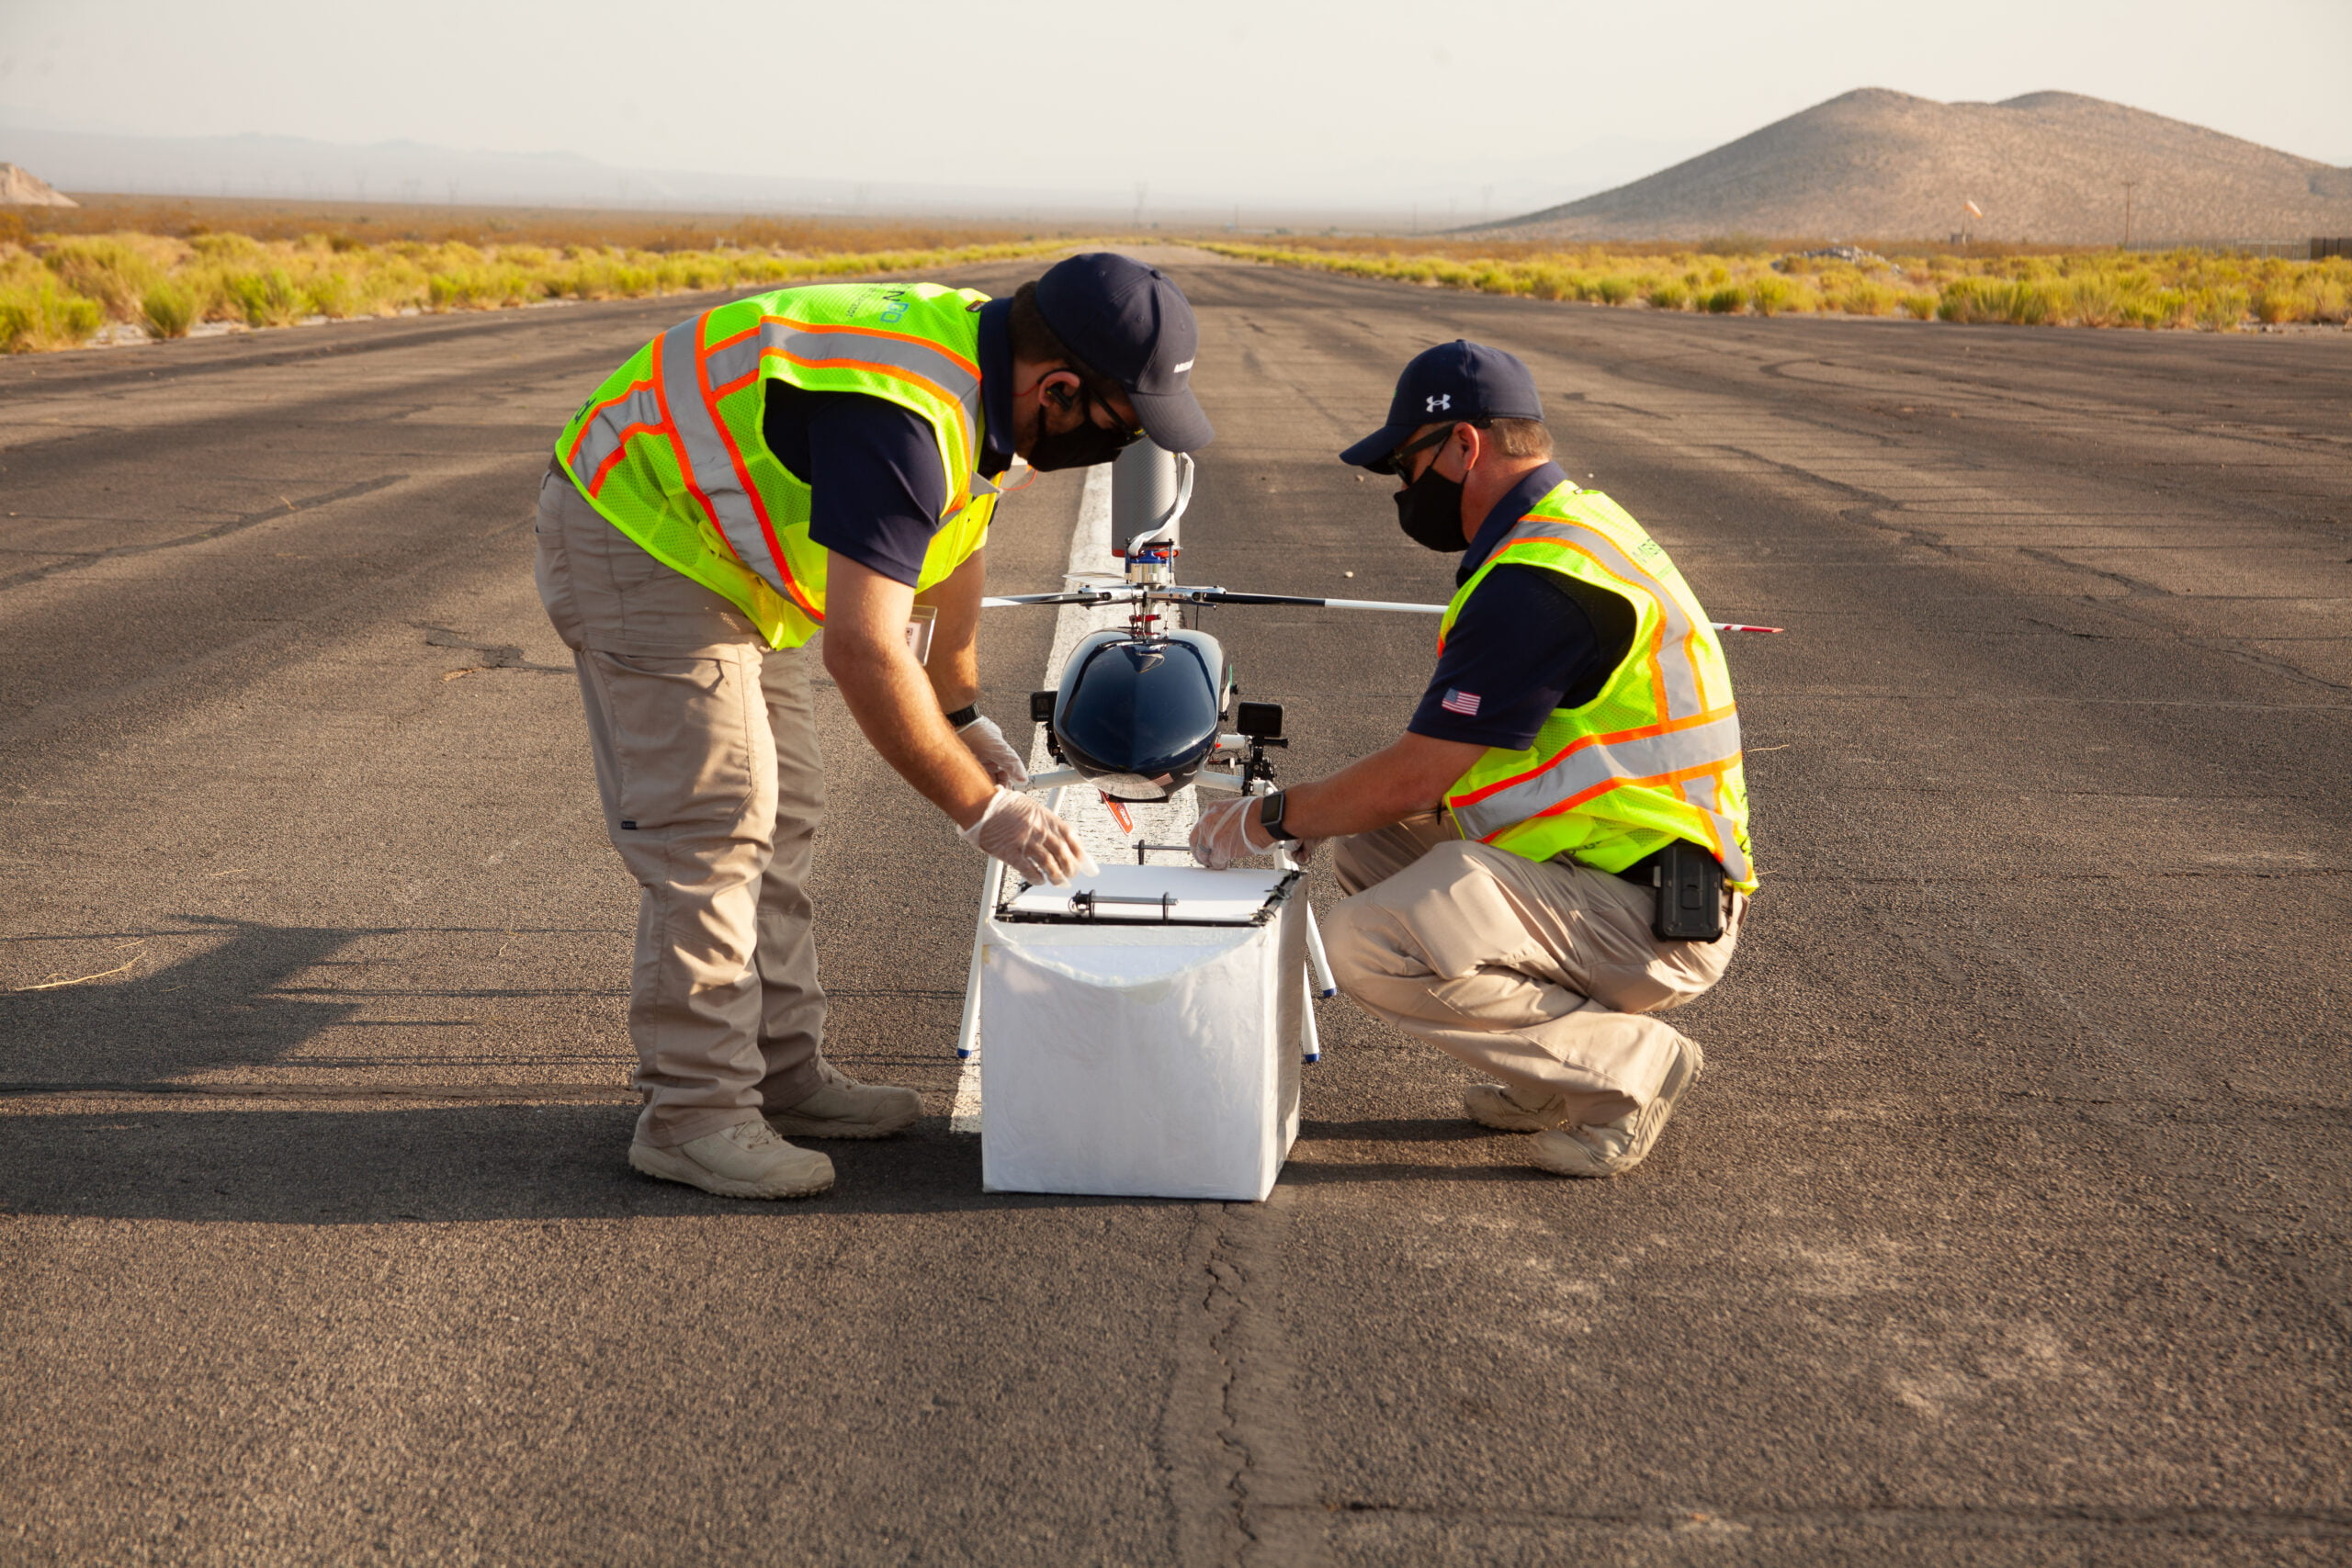 MissionGO unmanned systems nevada flight